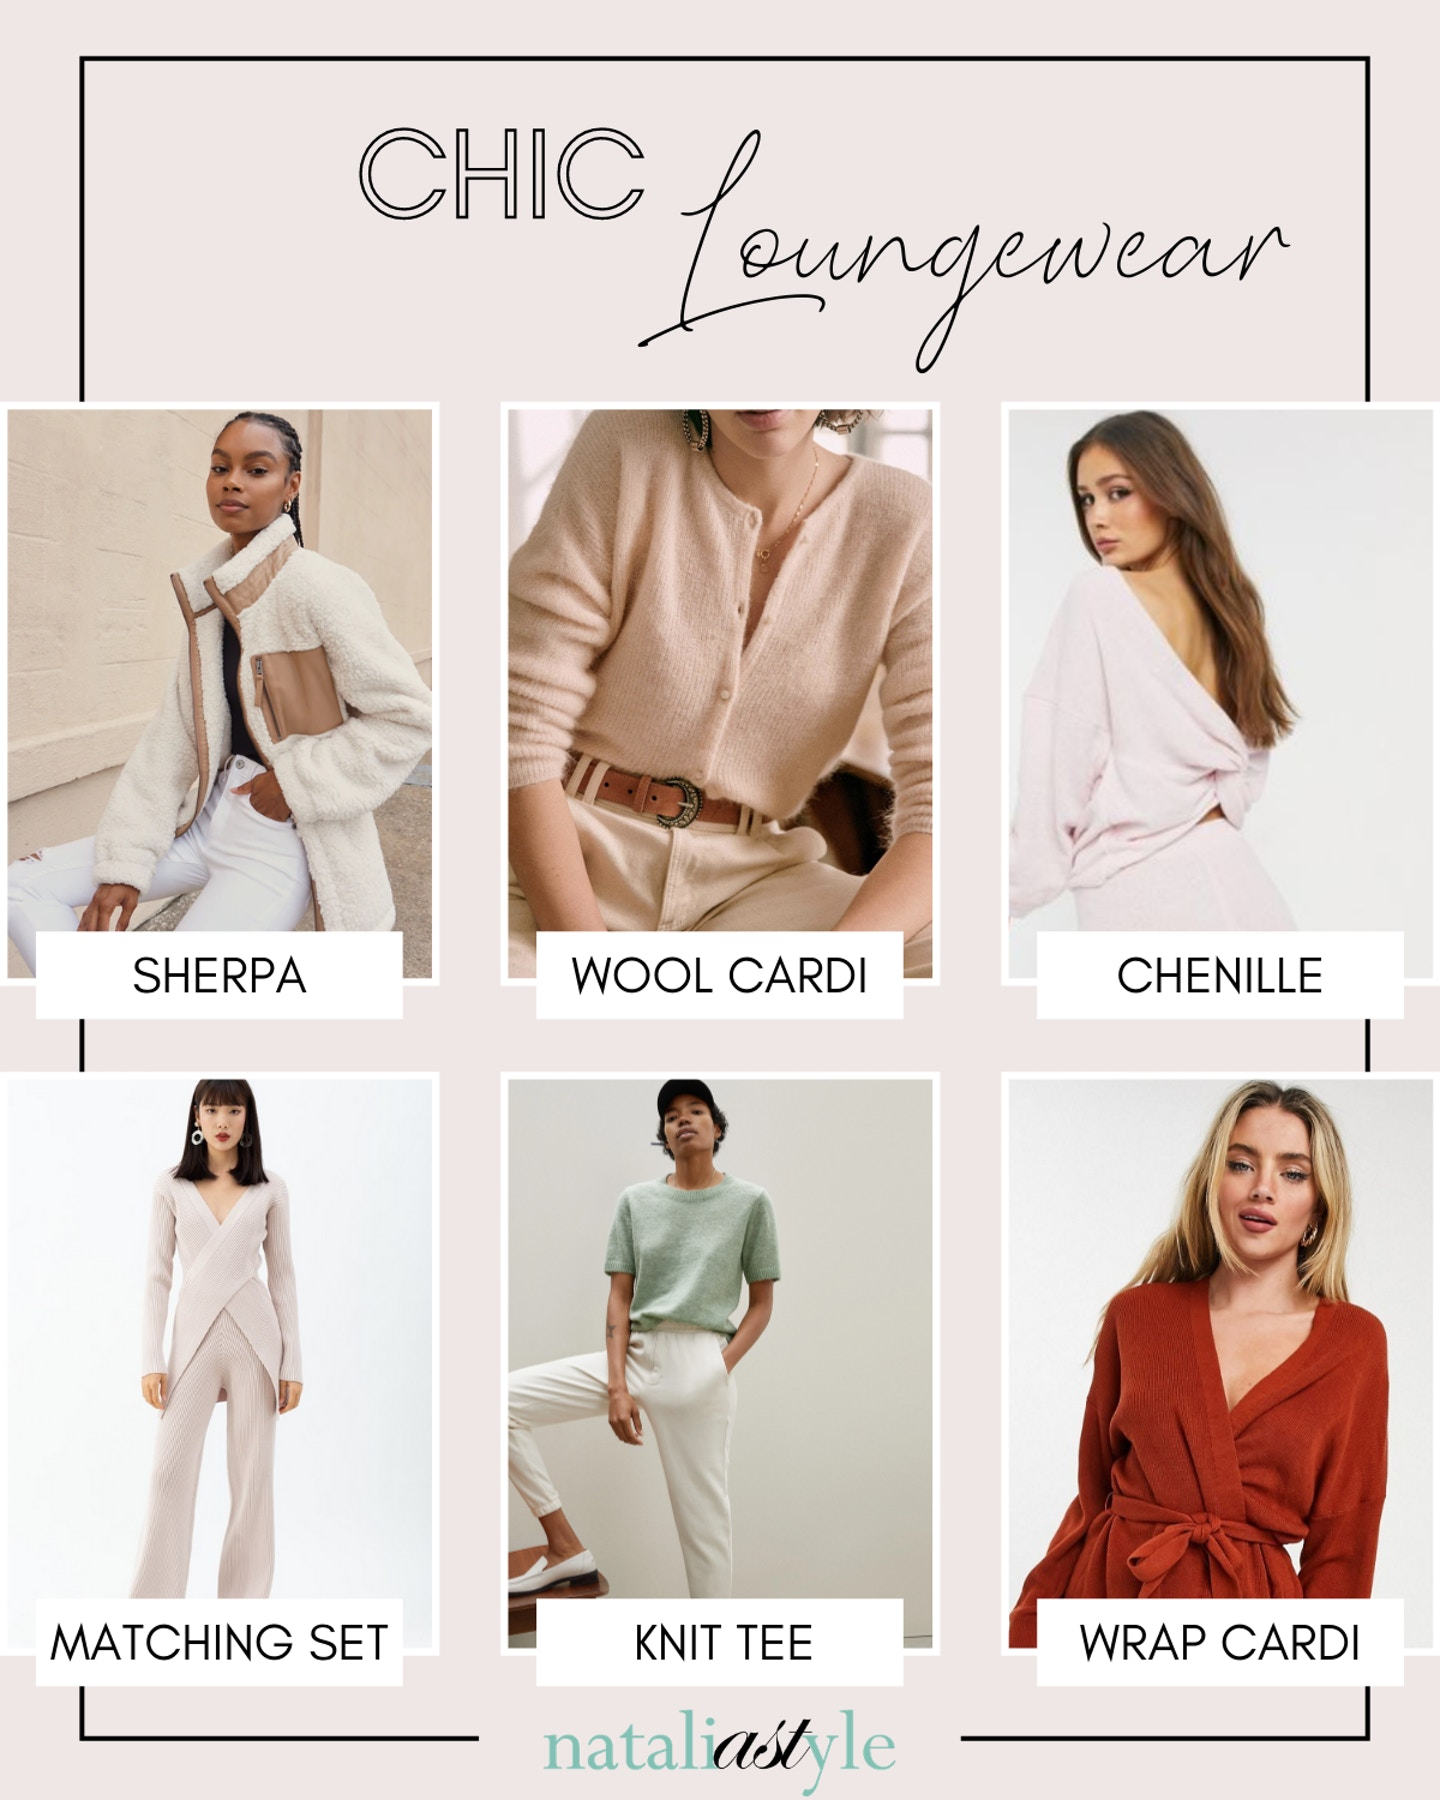 Looking for chic loungewear? I'm sharing a roundup of cozy clothes you can even wear on a zoom call. From chic cardigans to knit sweats, it's time to up your stay at home wardrobe game!